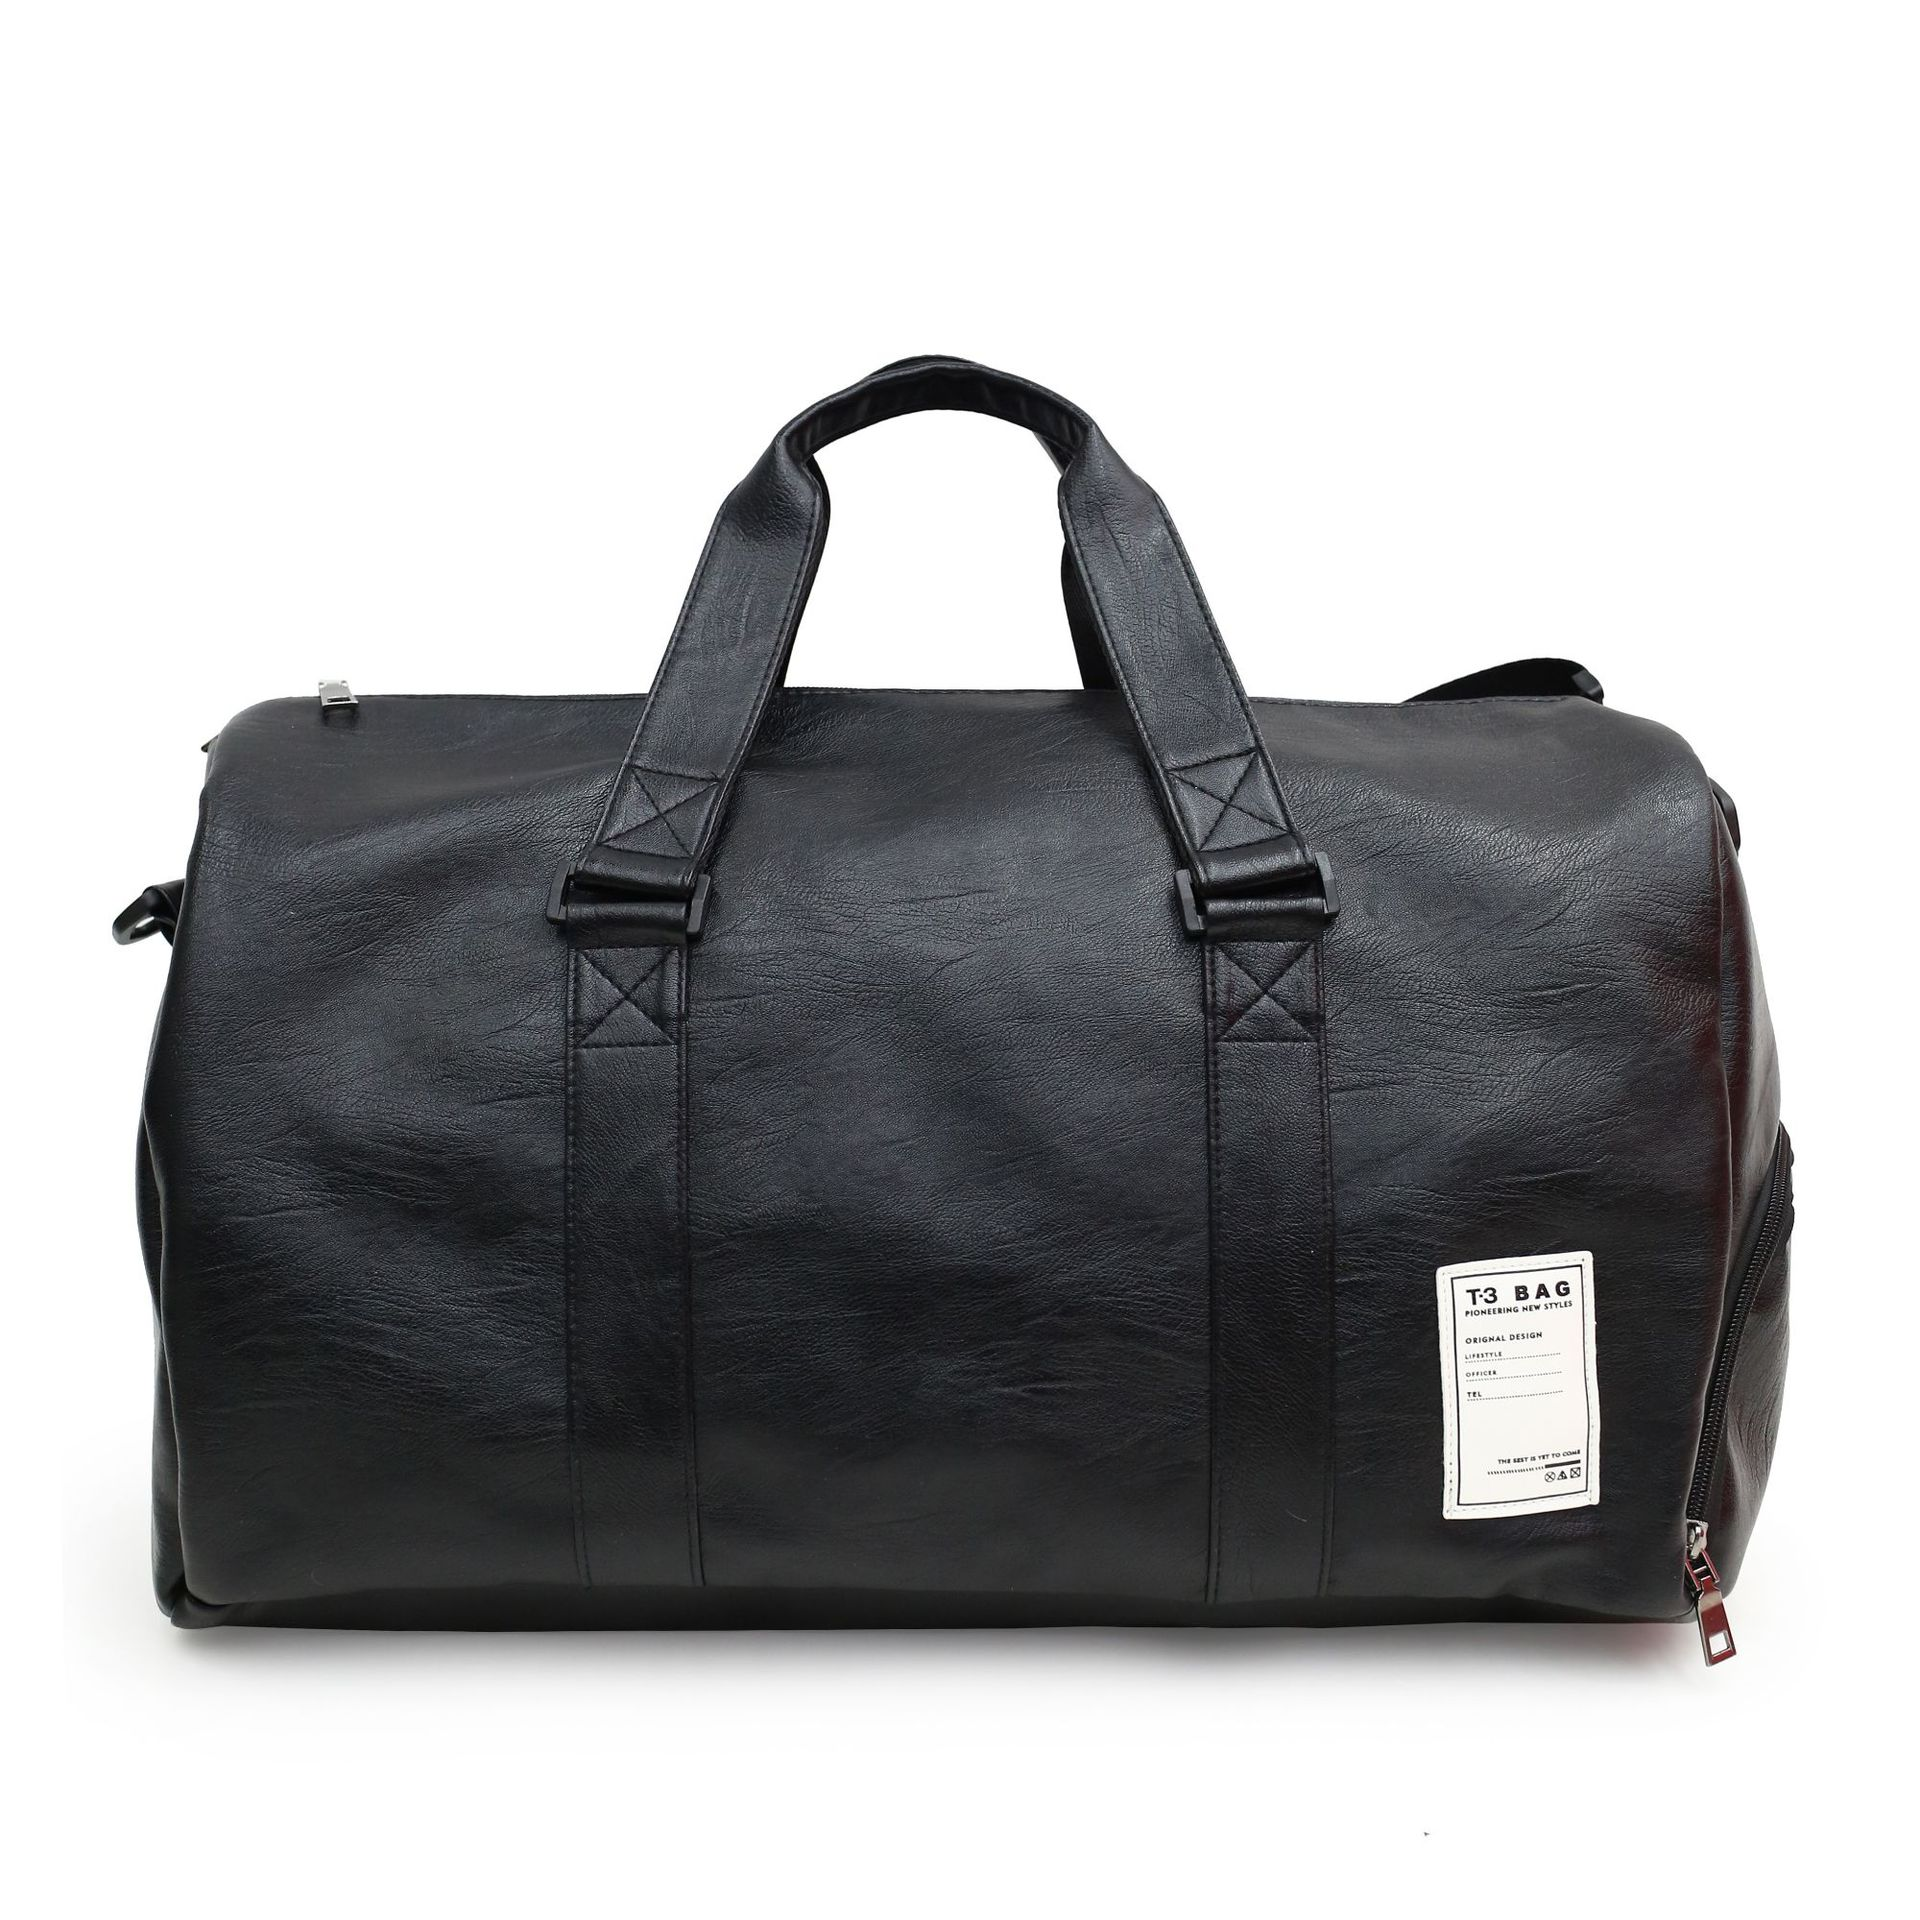 monerffi-fashion-duffle-bag-for-men-and-women-short-distance-travel-bags-large-capacity-sports-fitness-luggage-shoulder-bag